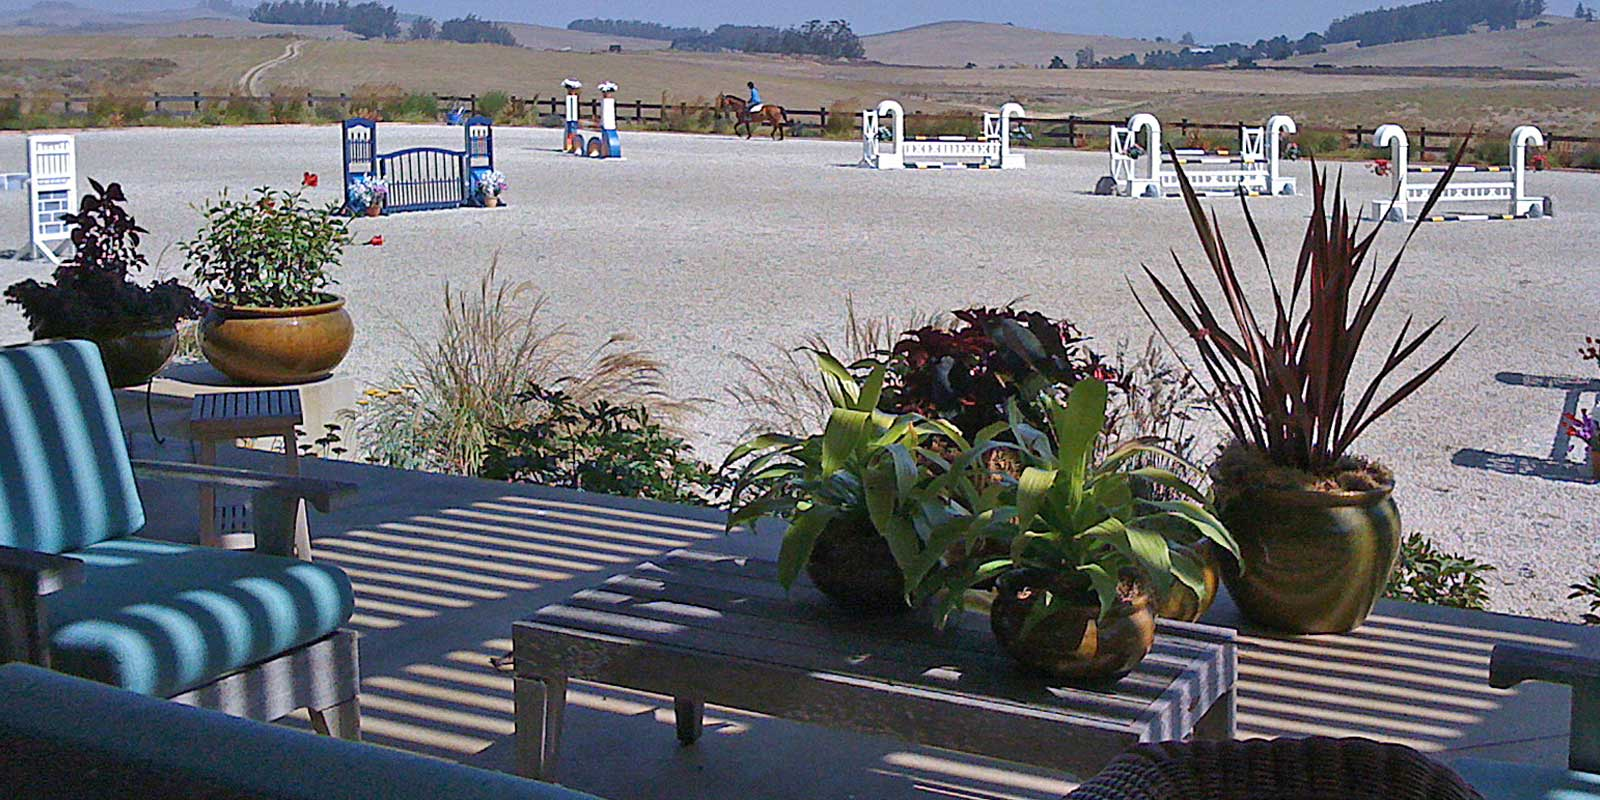 View of equestrian arena from viewing pavillion